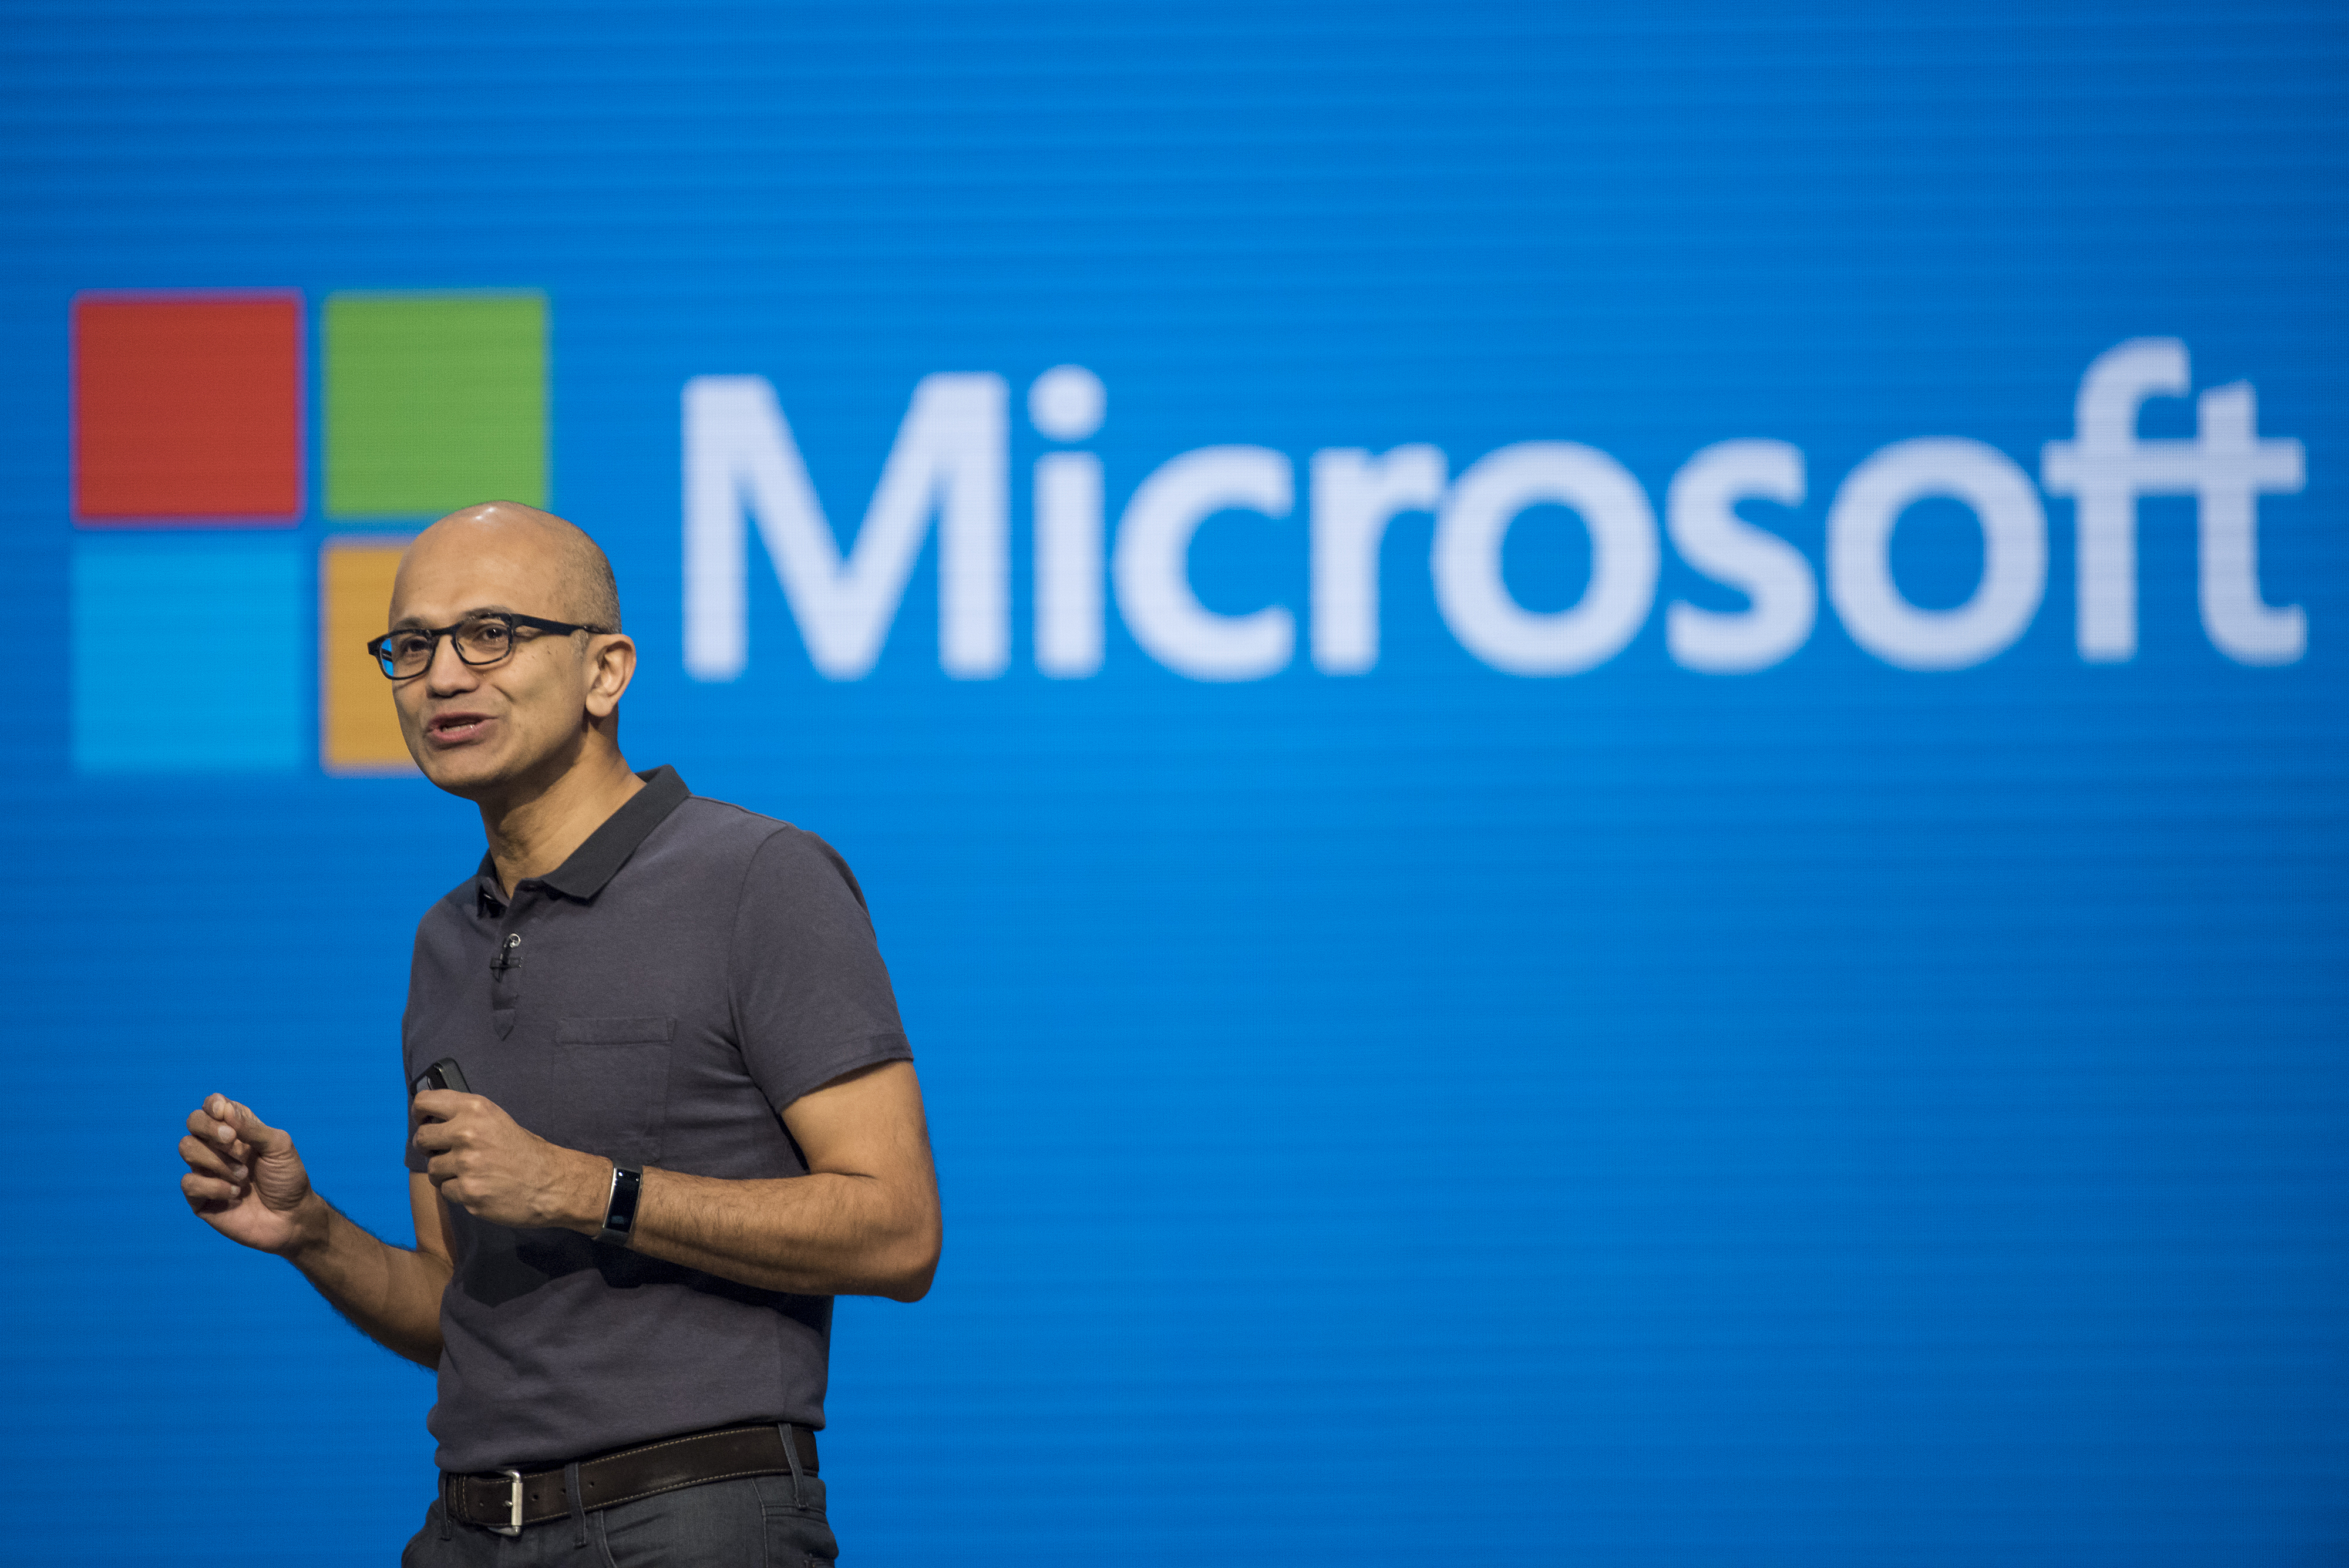 Satya Nadella, chief executive officer of Microsoft Corp., speaks during a keynote session at the Microsoft Developers Build Conference in San Francisco, California, U.S., on Wednesday, March 30, 2016.